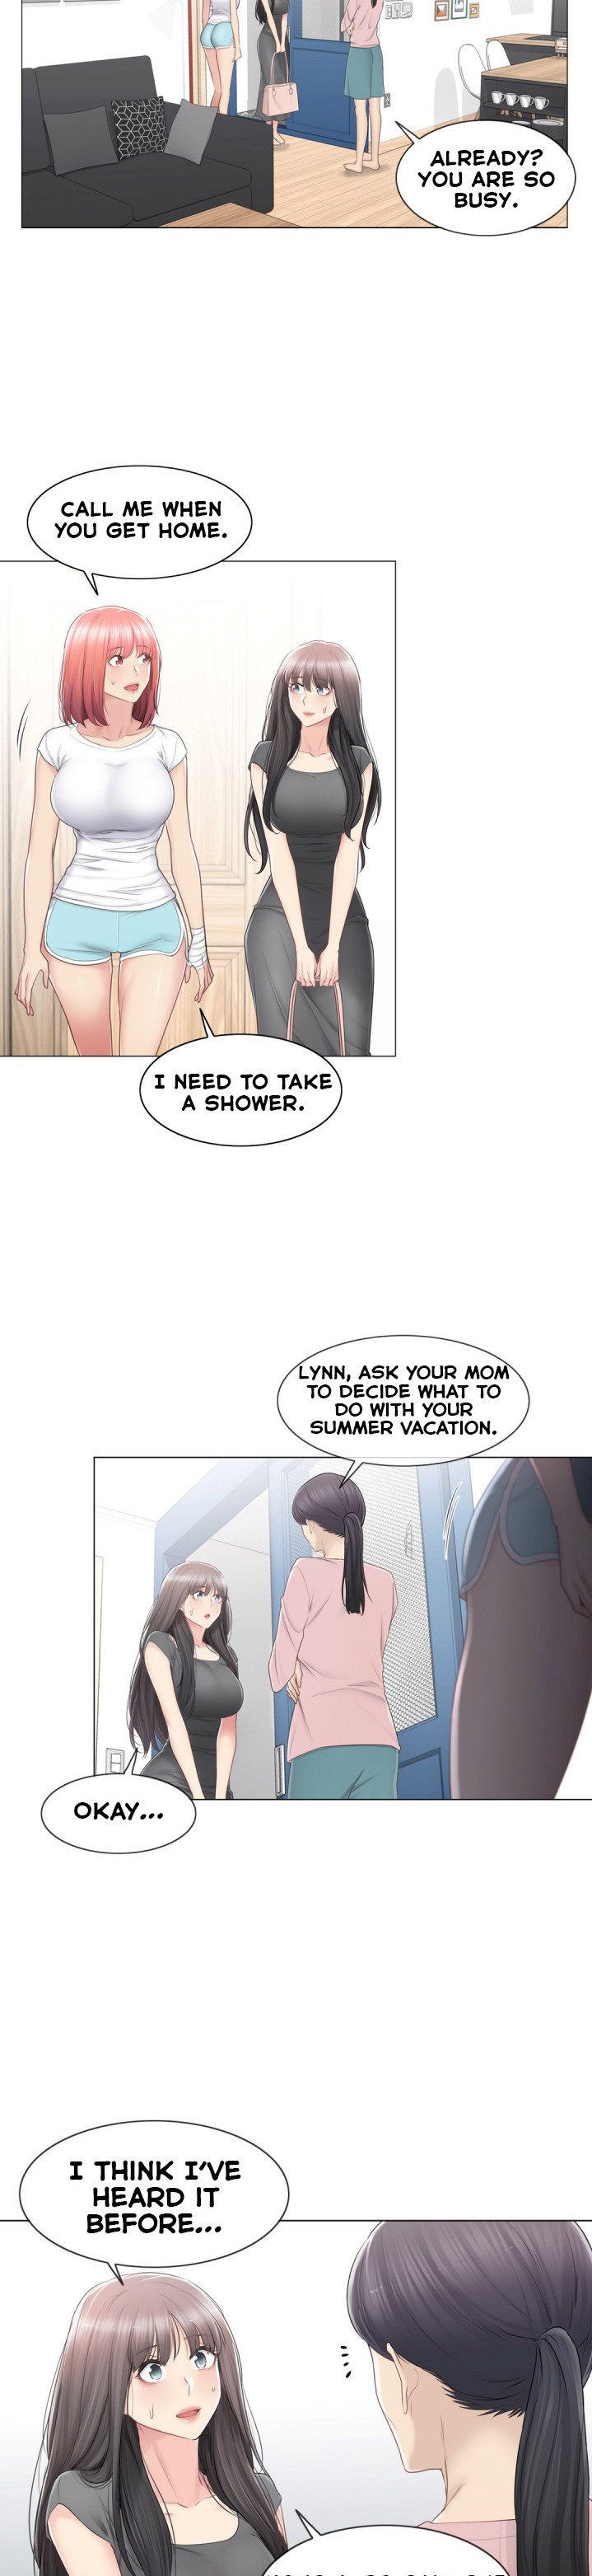 Touch on Chapter 82 - Manhwa18.com